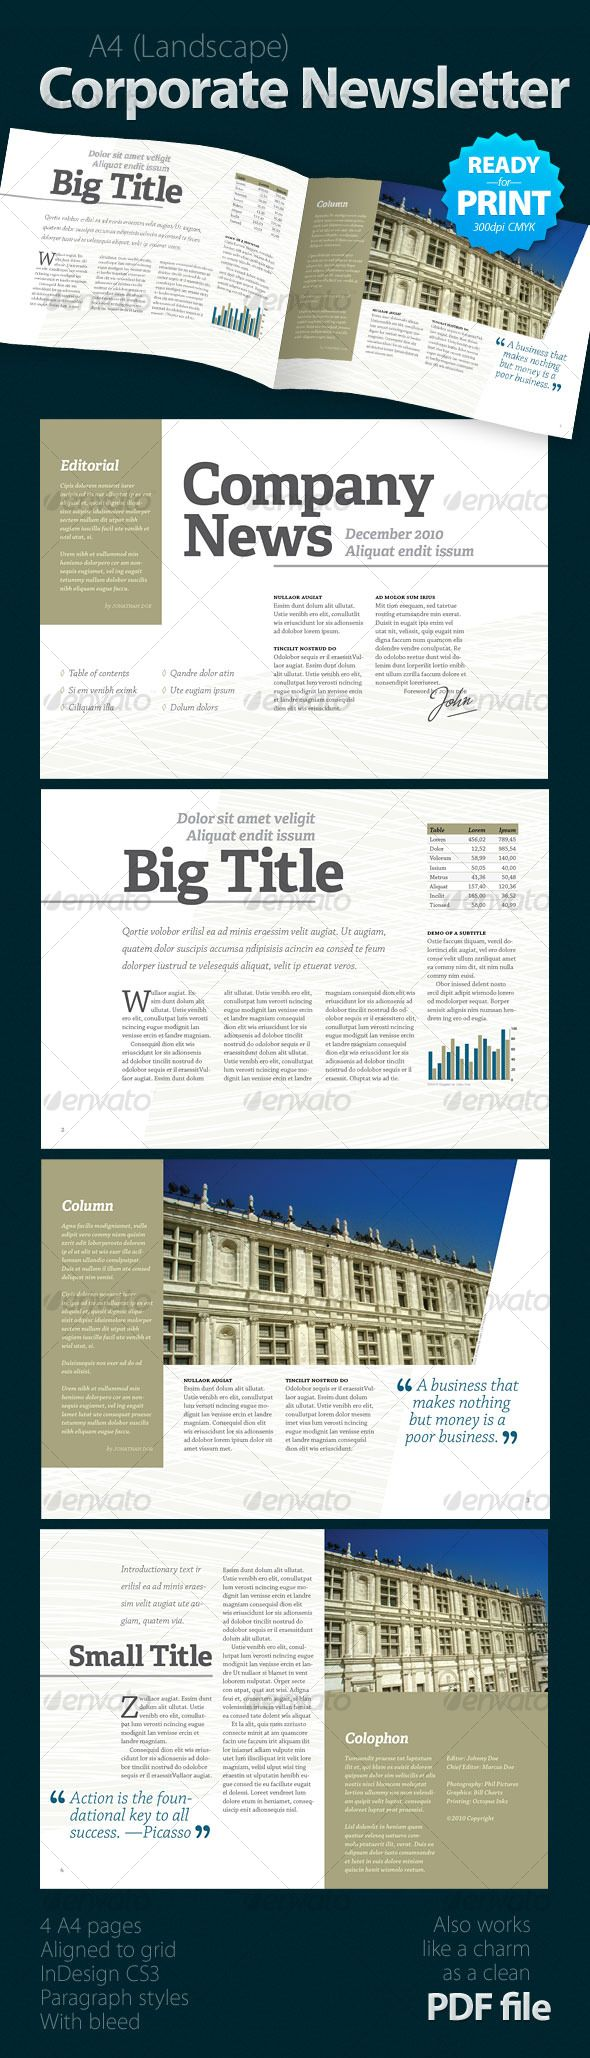 Corporate Newsletter 4 Pages